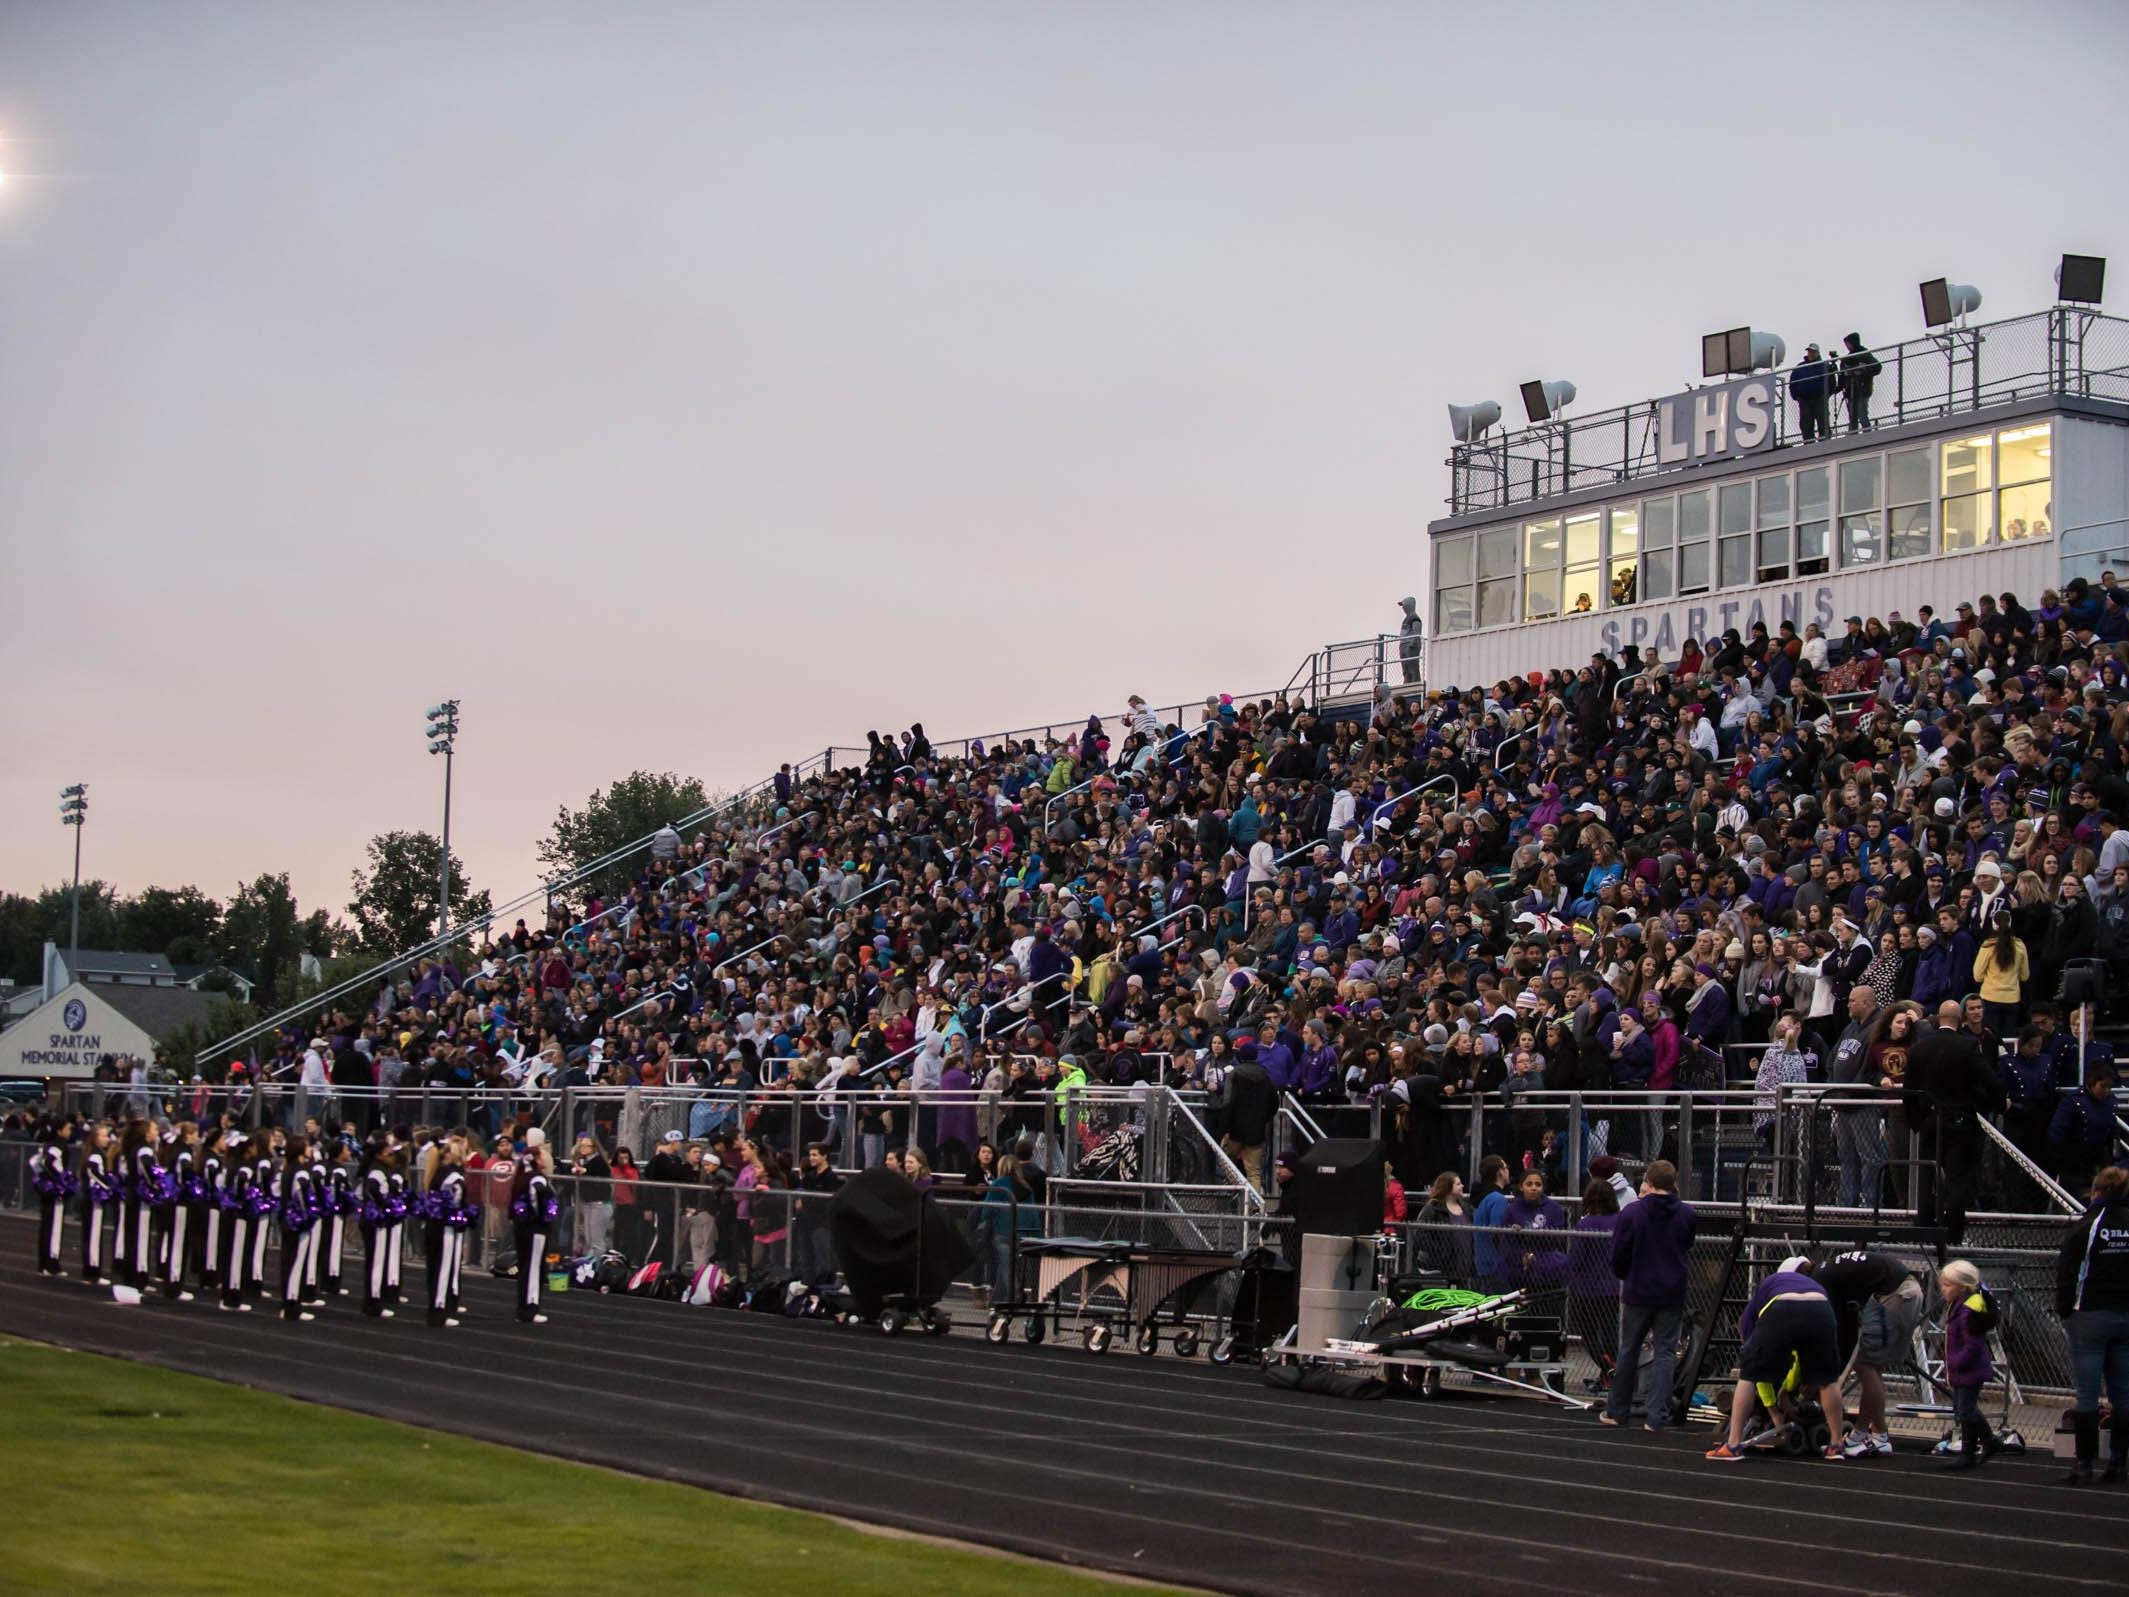 A full crowd at Lakeview's home comming game Friday evening.